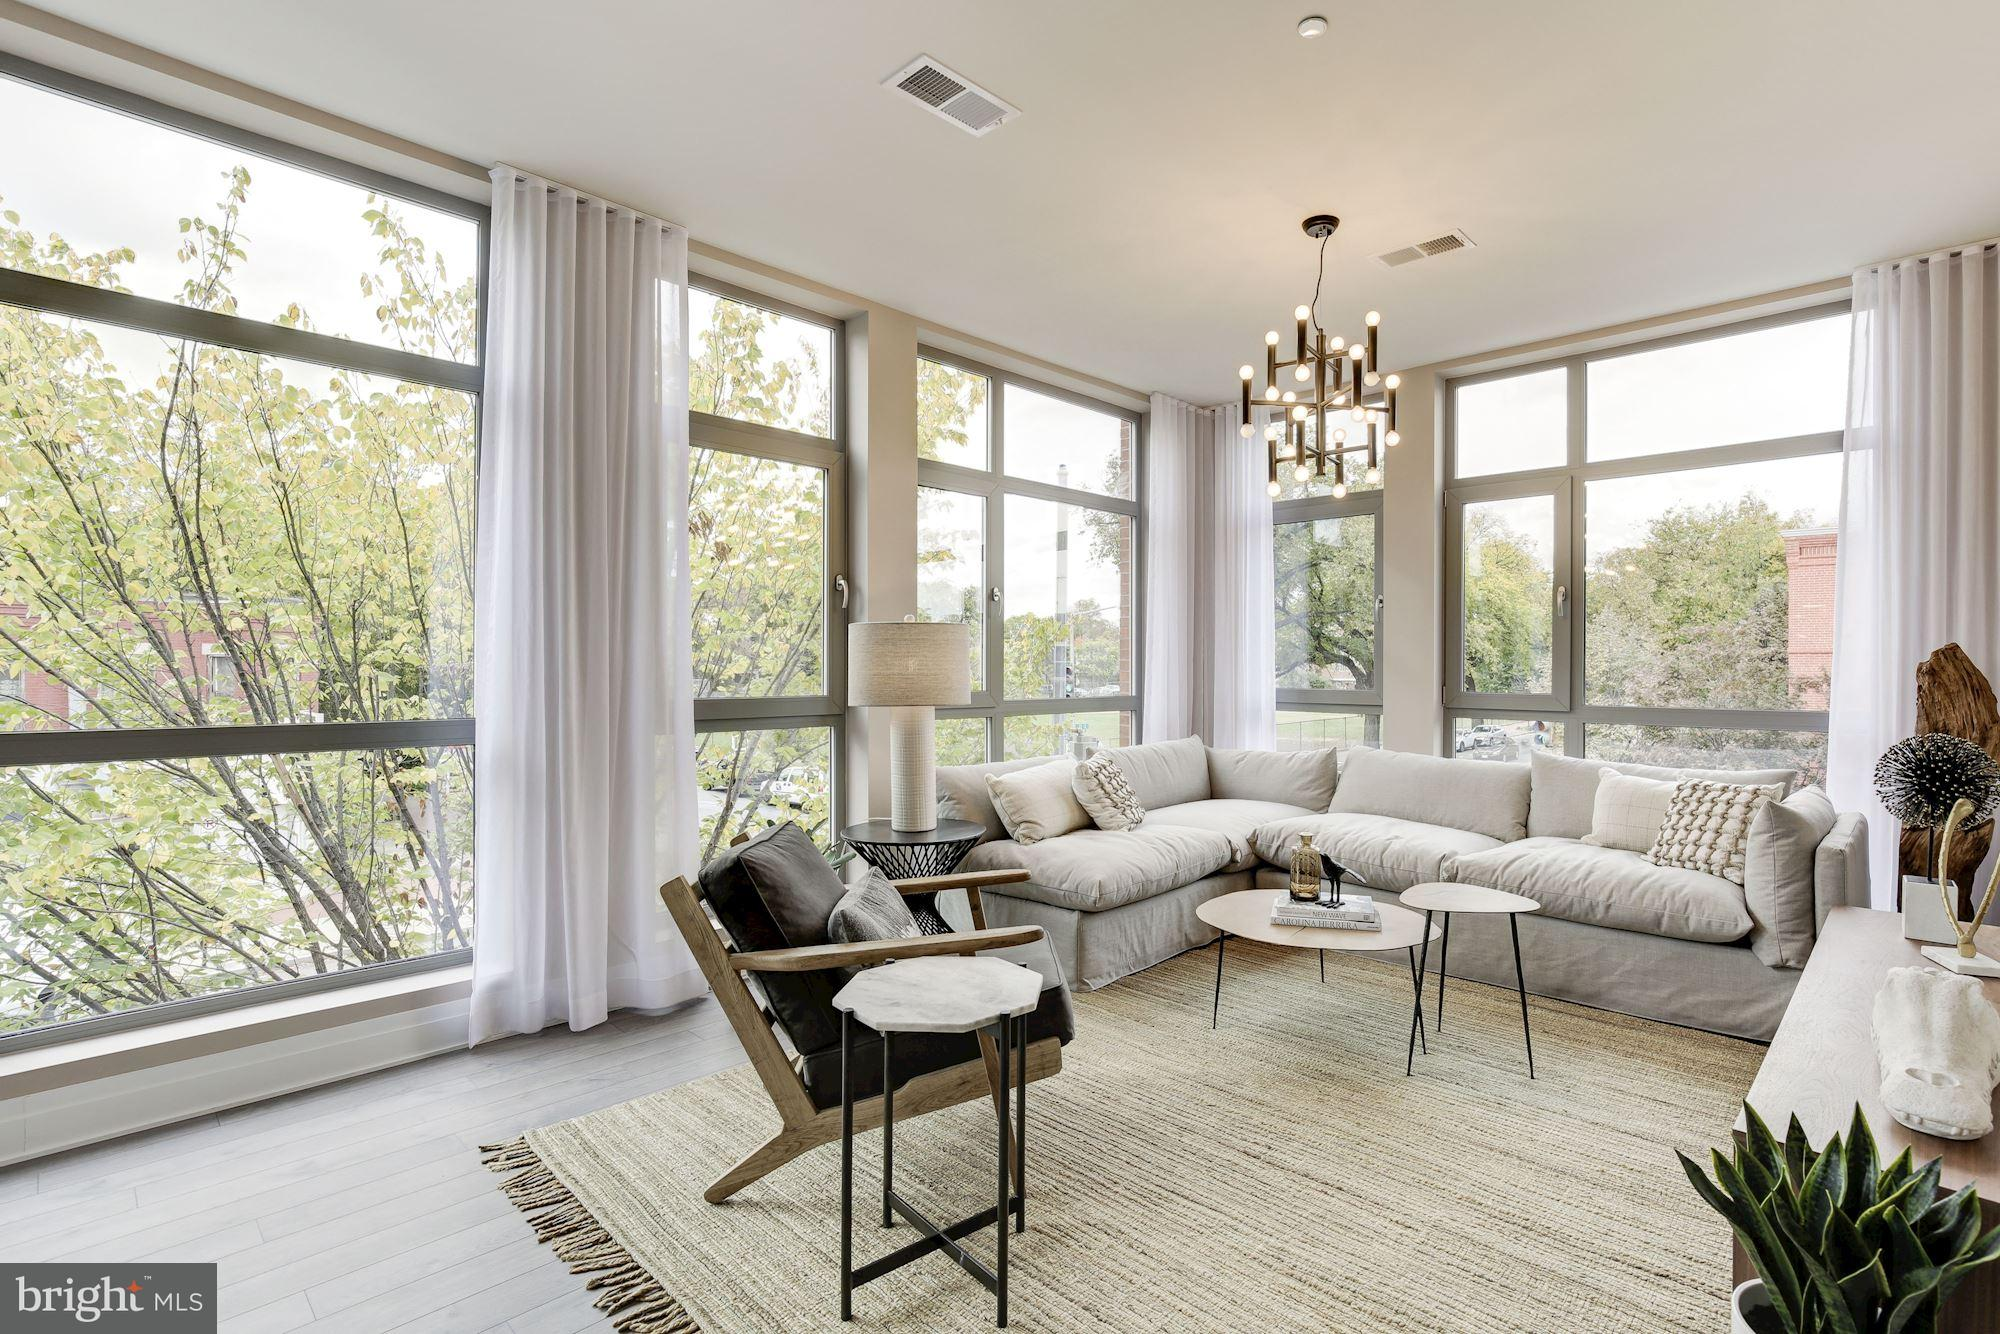 Kipling House with INTUS Windows and Balcony Doors, and interior design by Akseizer Design Group